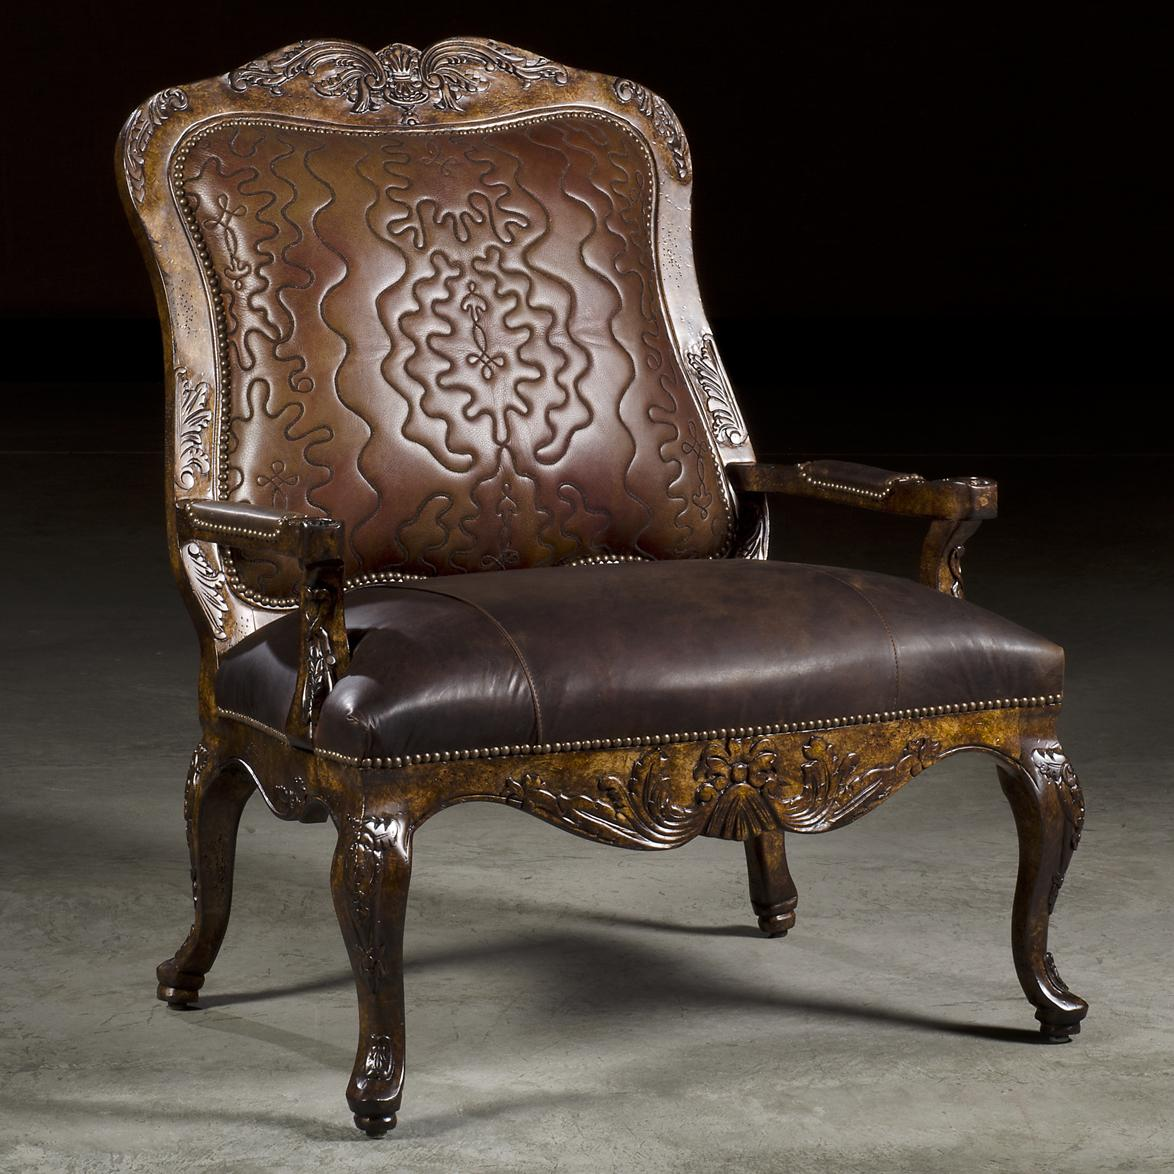 Savannah Traditional Styled Accent Chair With Exposed Wood Frame And  Elegant Carved Details By Paul Robert